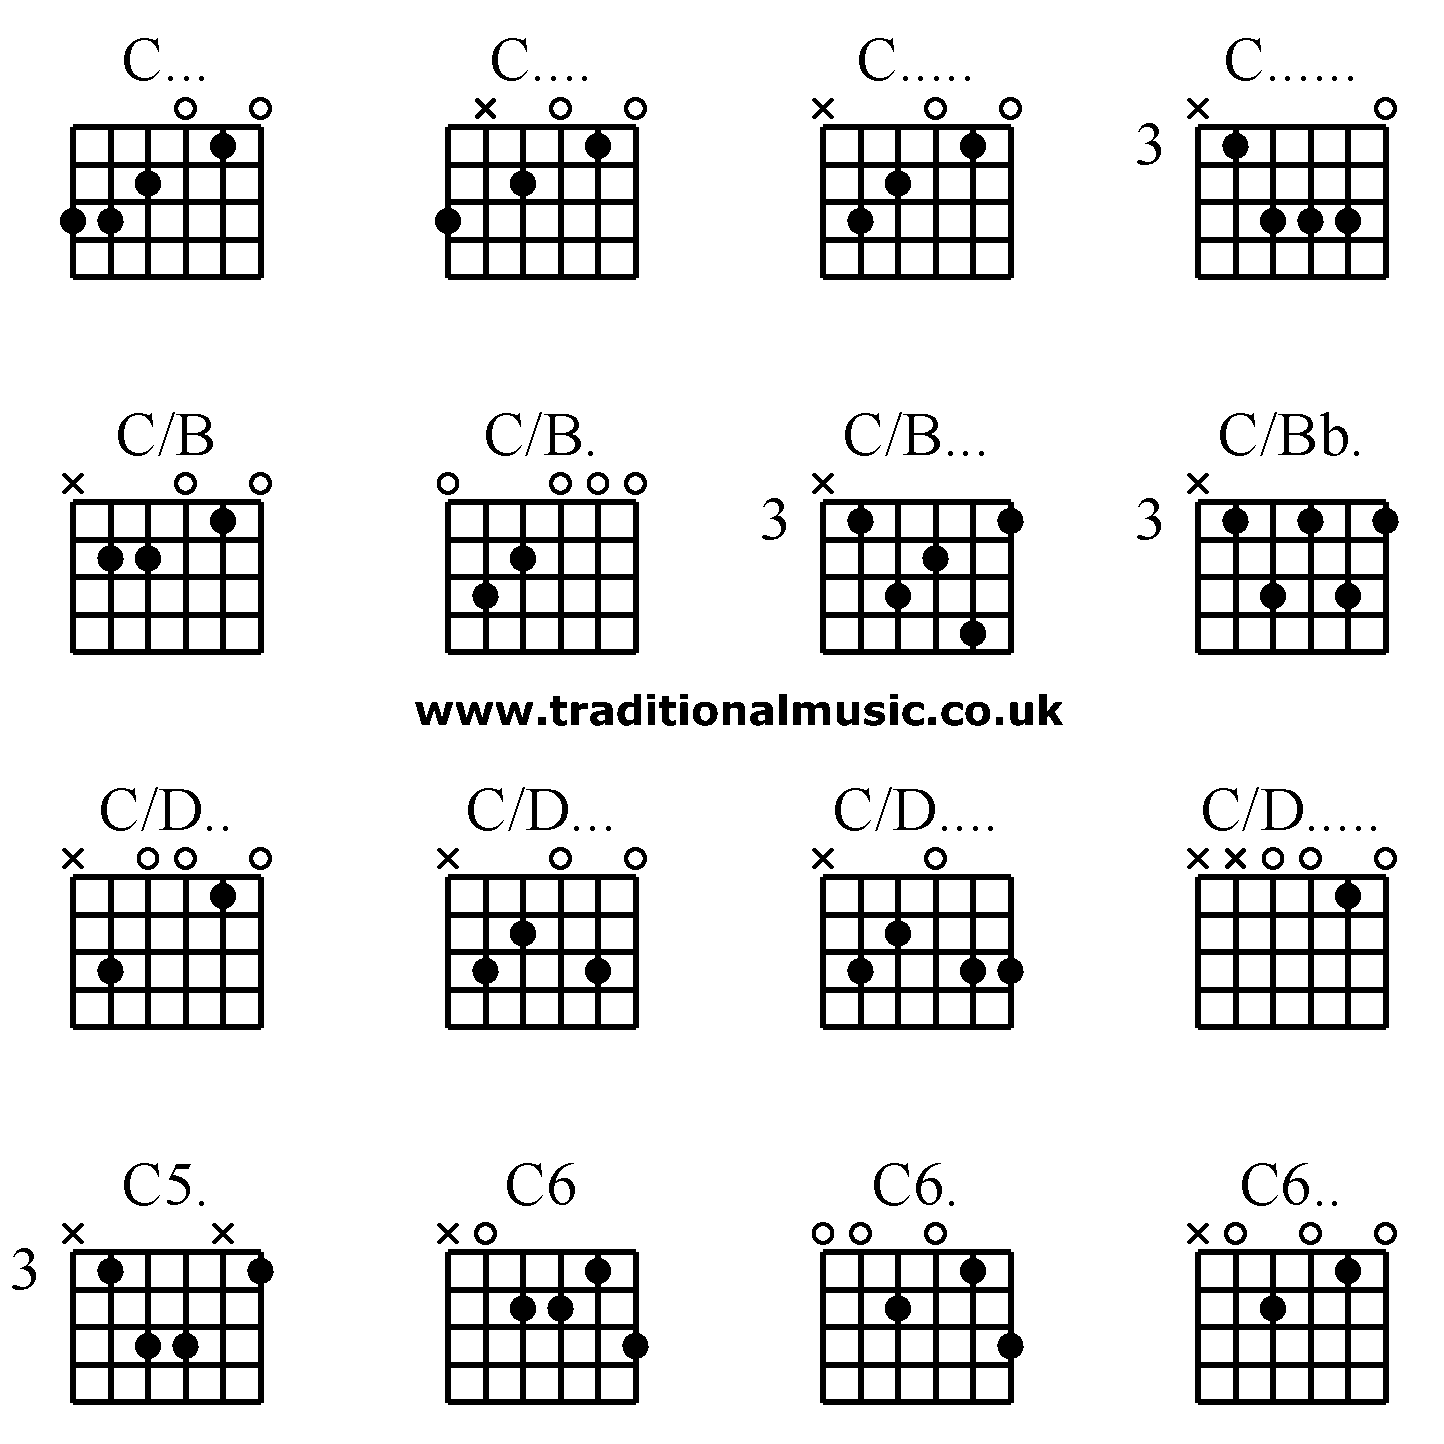 Guitar chords advanced - C. C. C. C., C/B C/B. C/B. C/Bb., C/D. C ...